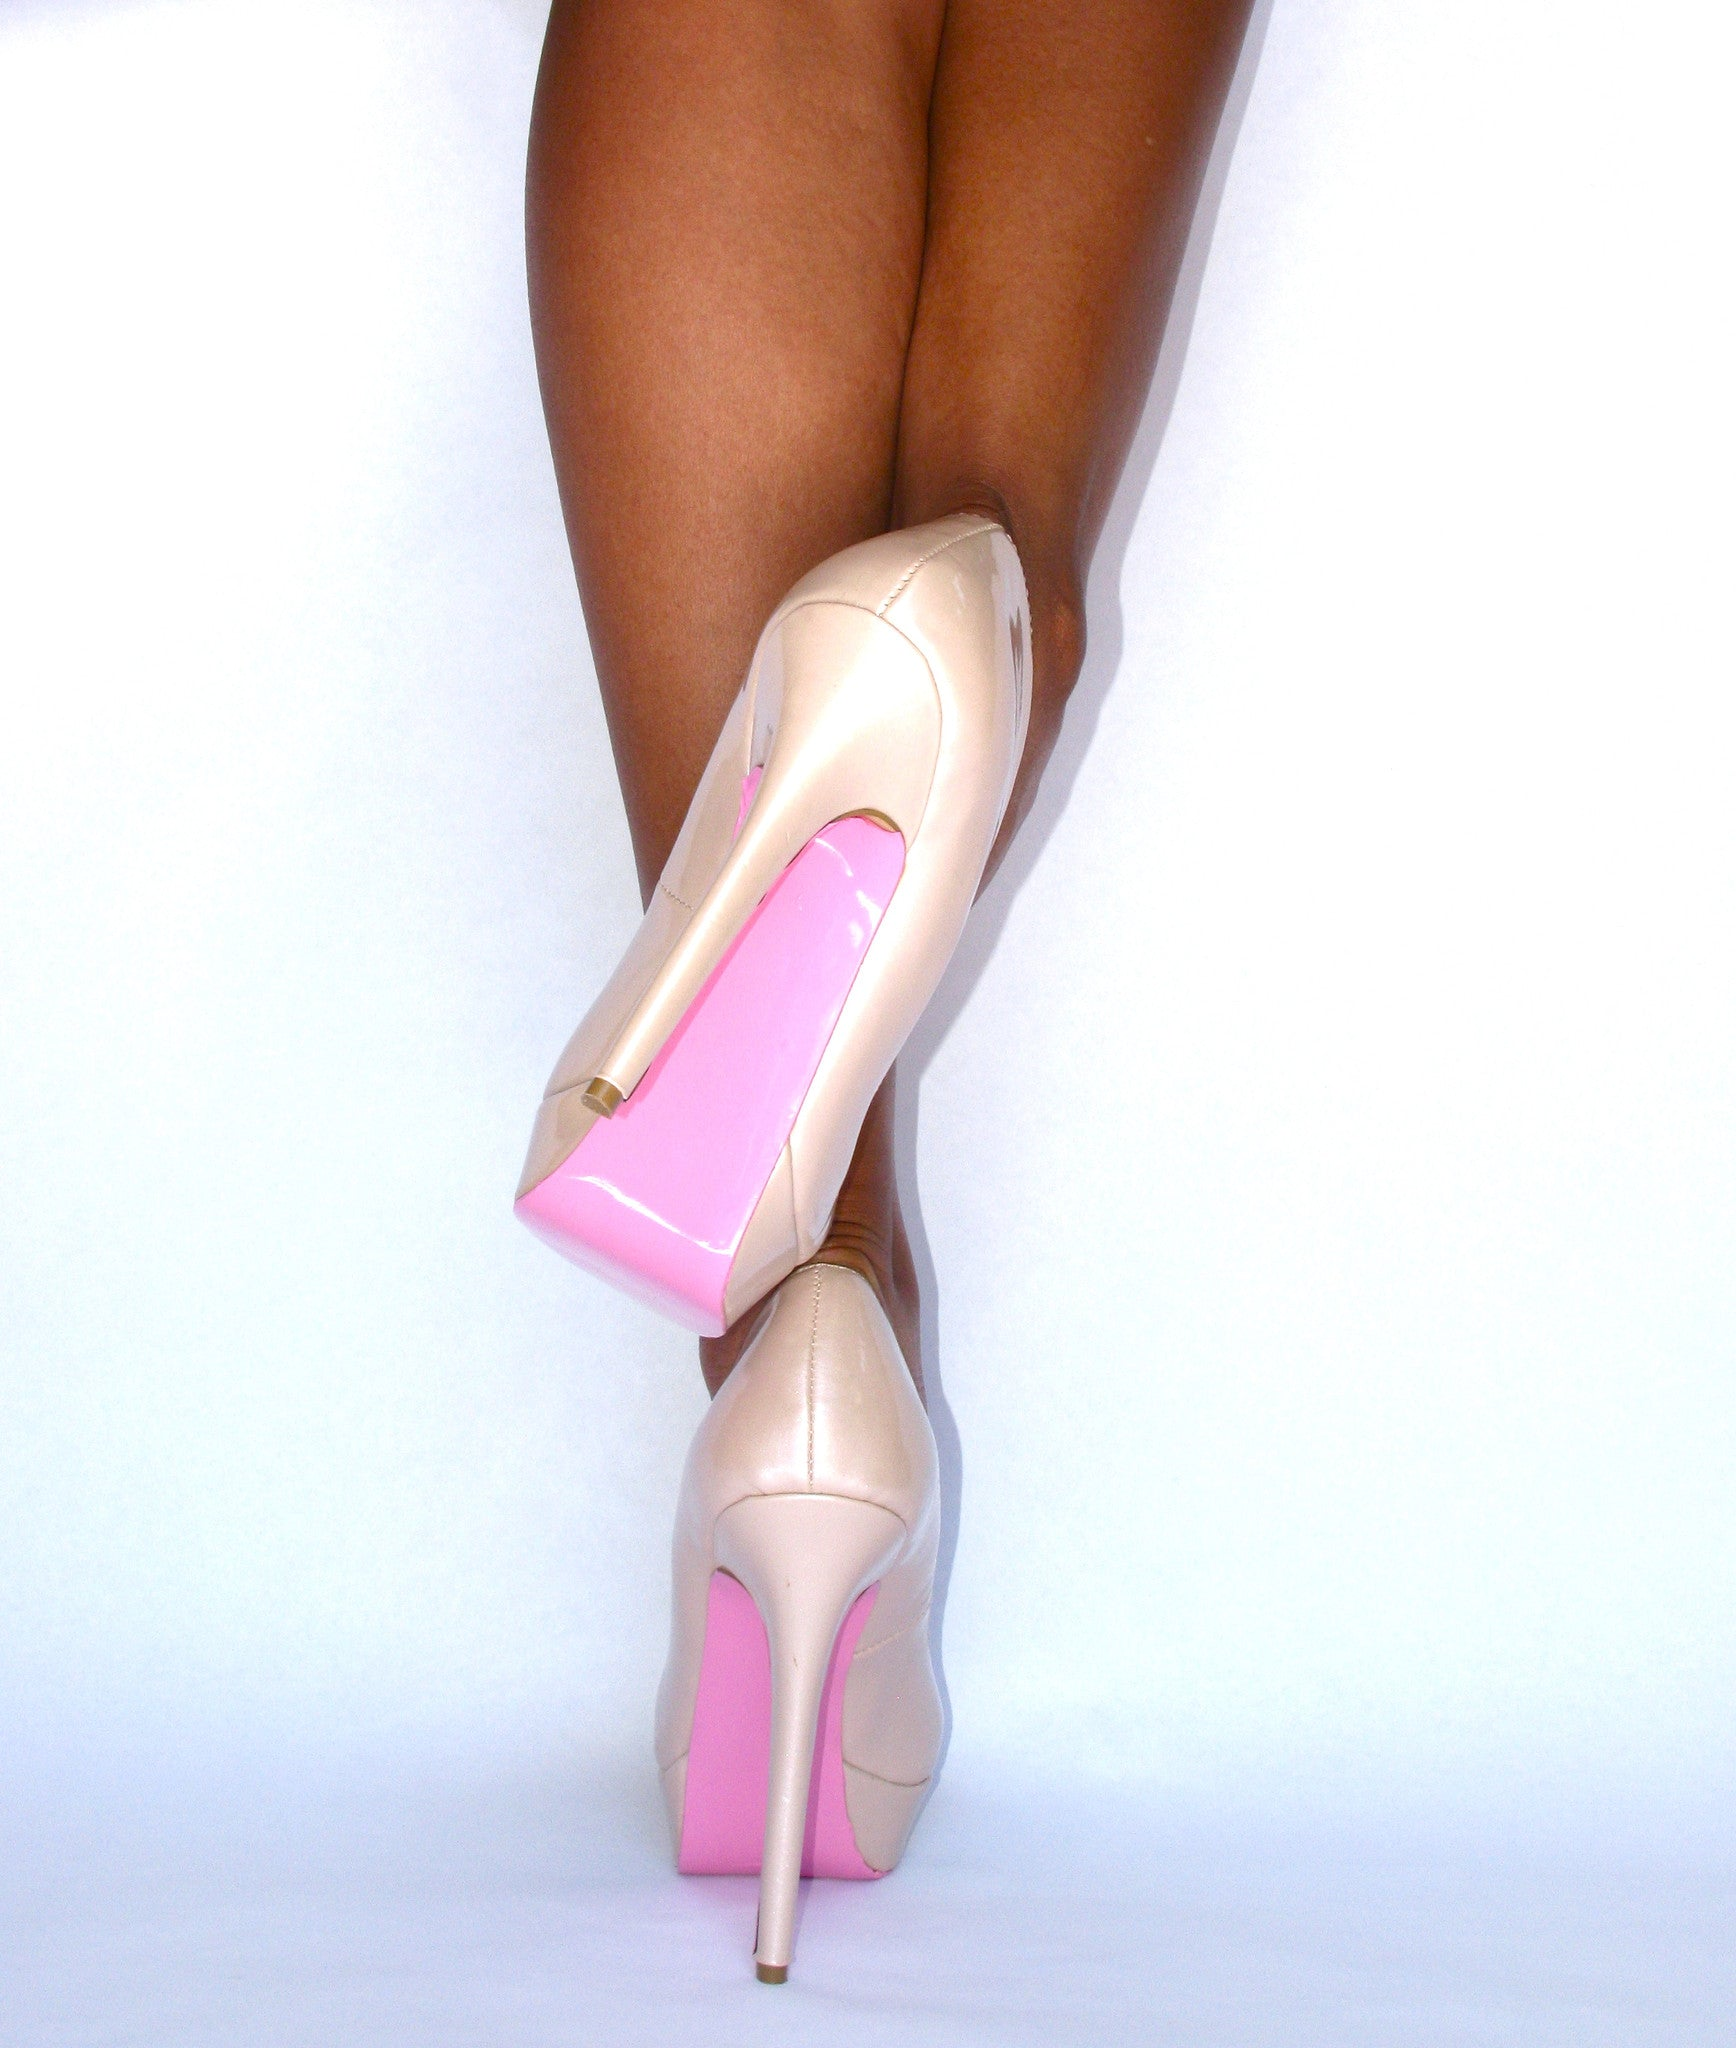 Pink Shoe Sole Kit for High Heels Pumps and Stillettos. DIY Non